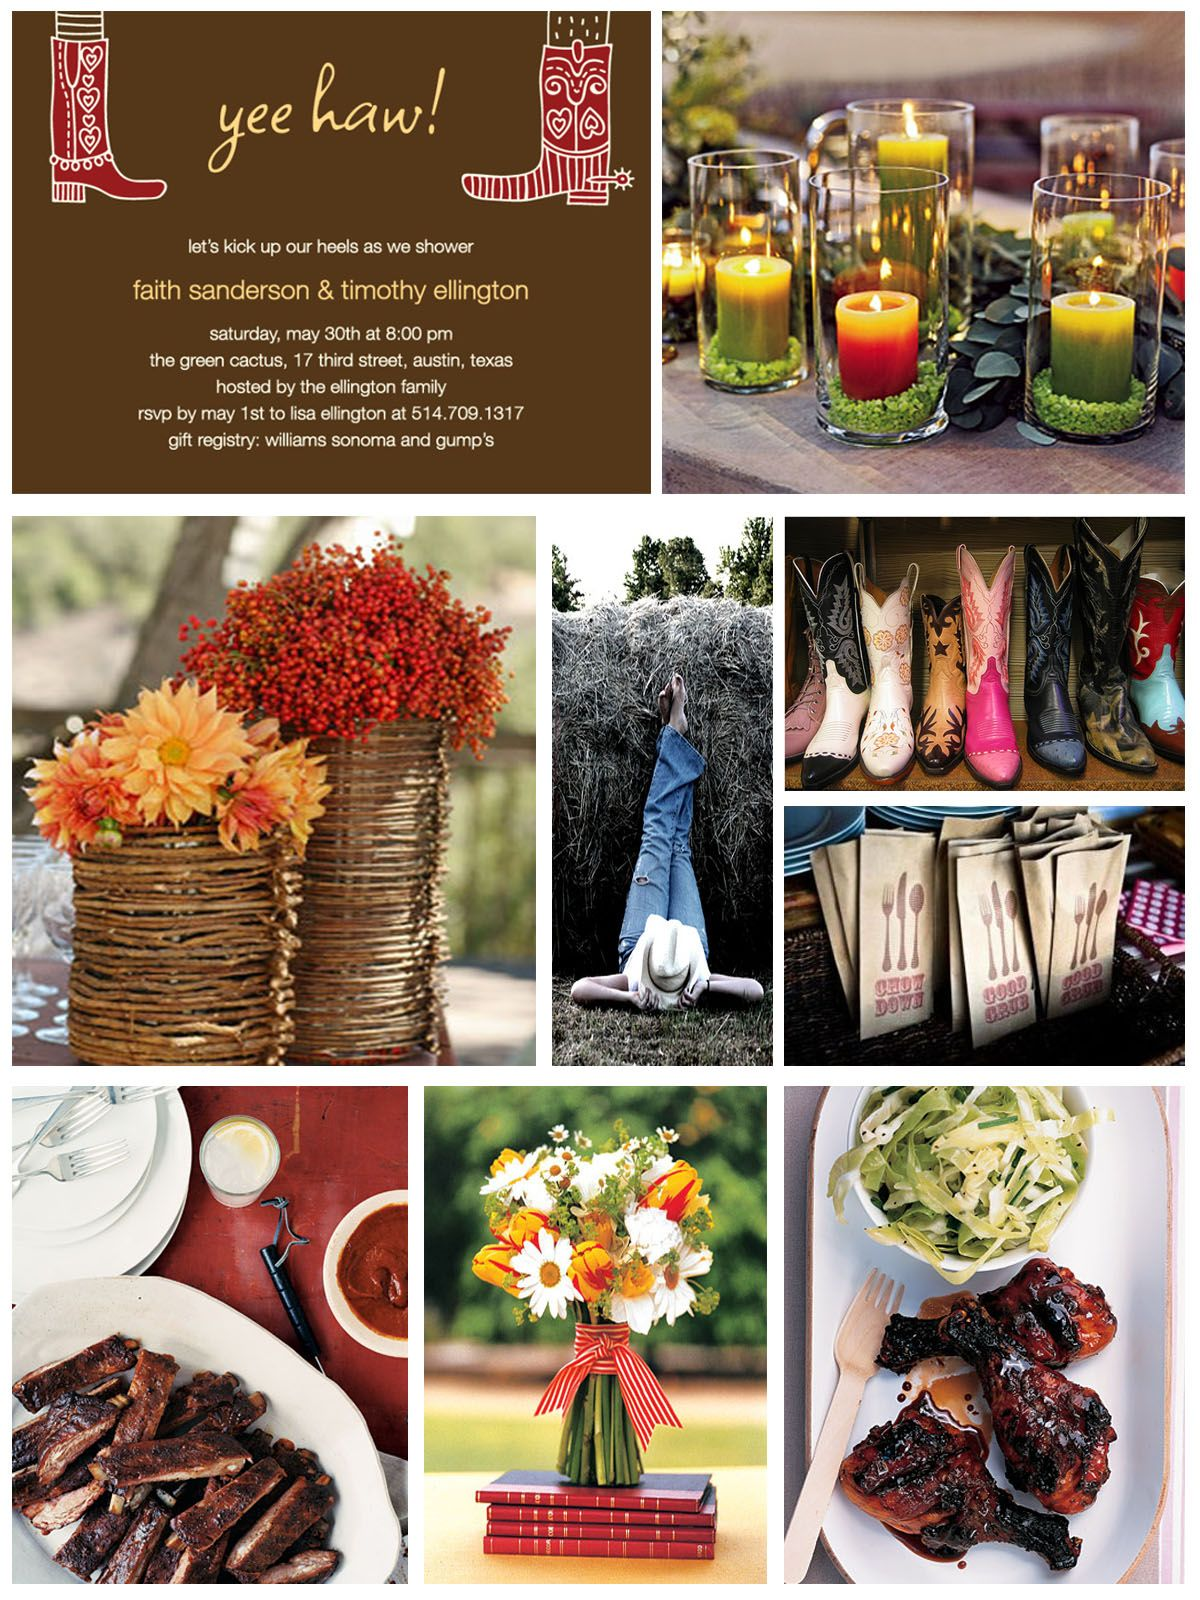 Western texas style themed wedding google search for Wedding party ideas themes